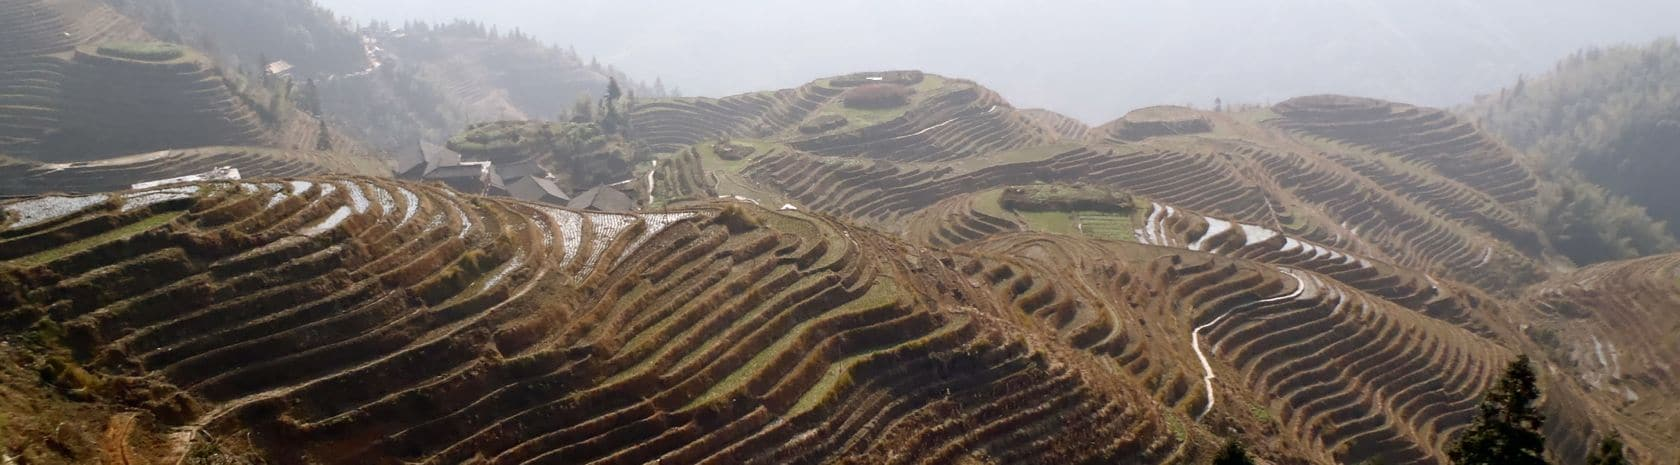 Longji Terraces